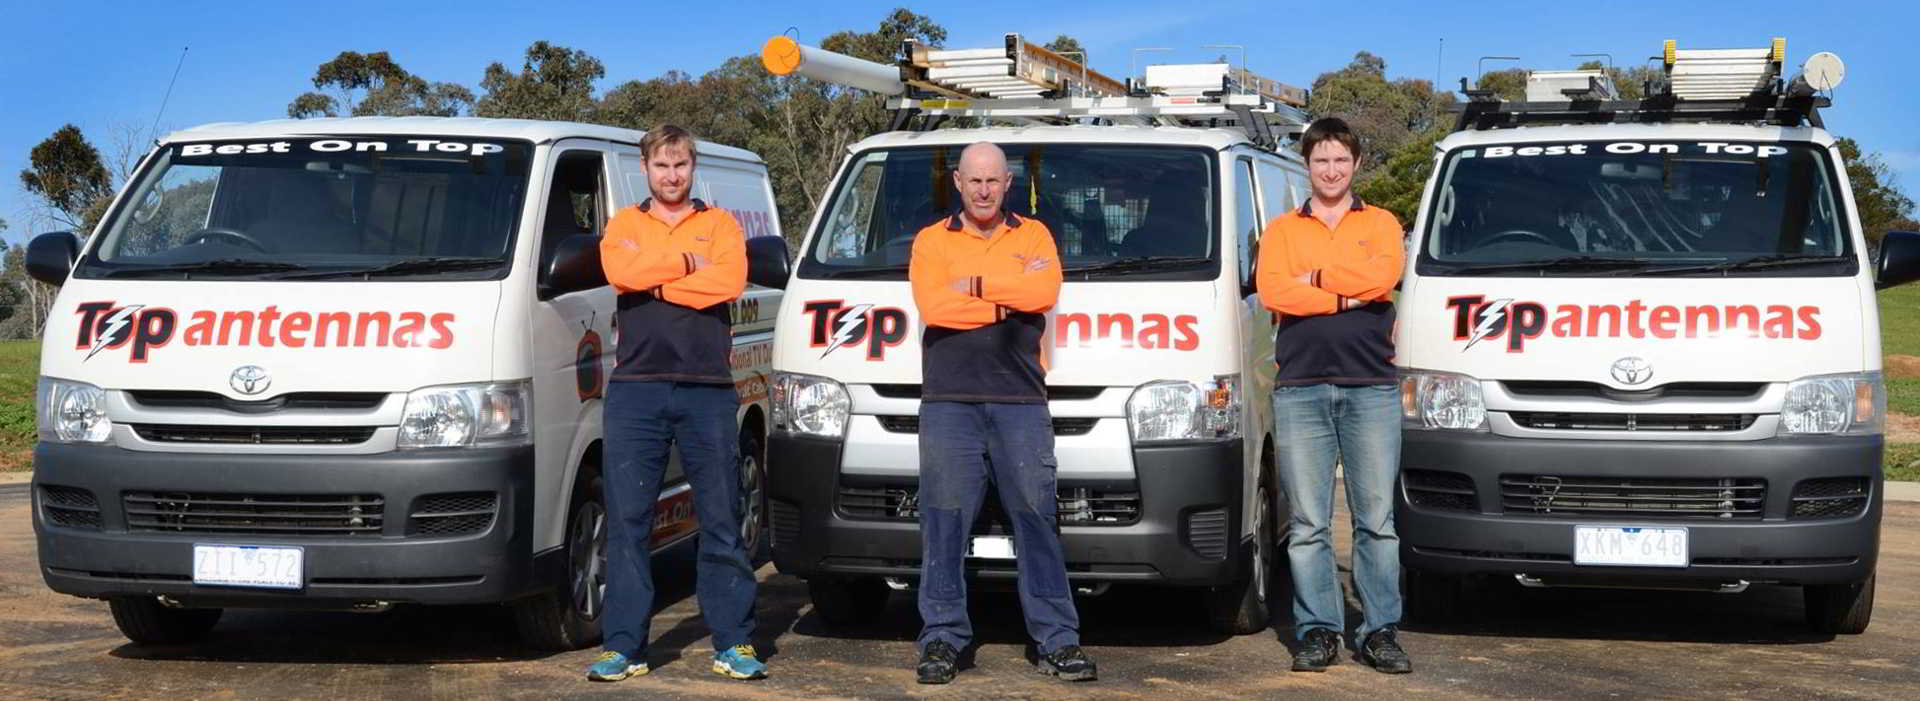 Top Antennas - Albury Wodonga Business